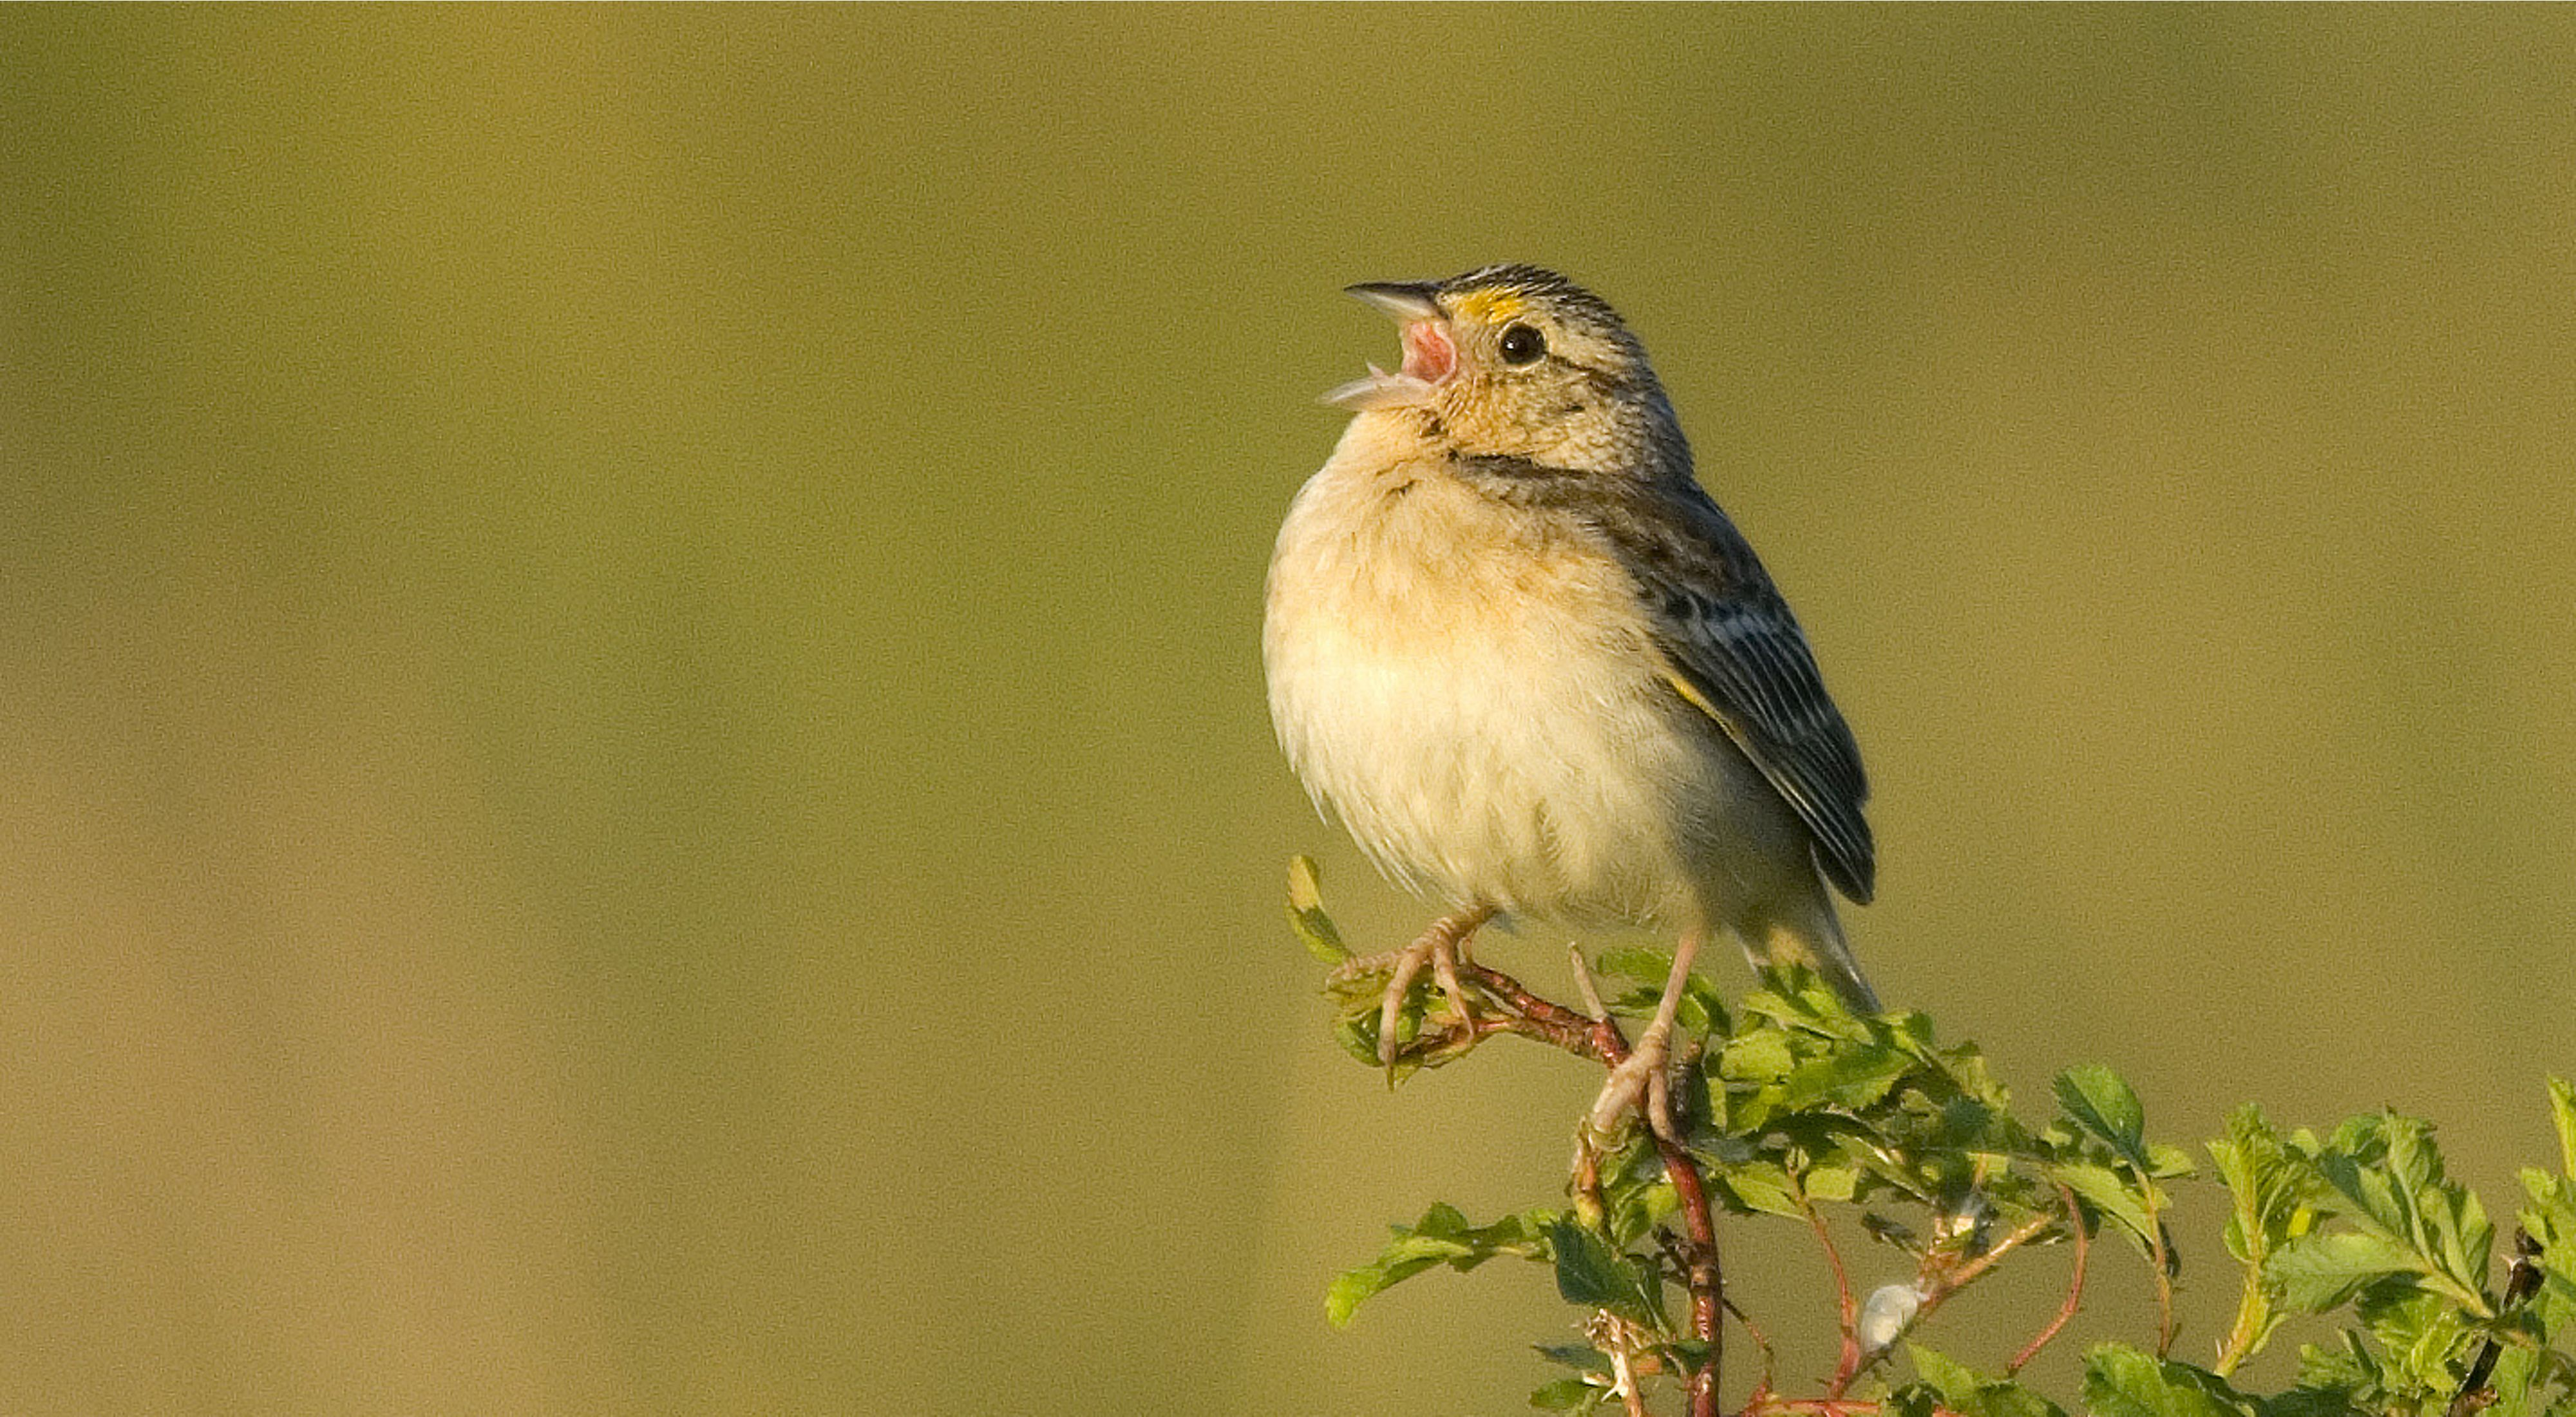 (ALL RIGHTS, ALL USES) A grasshopper sparrow (Ammodramus savannarum) enjoys the results of a high-diversity prairie restoration carried out at The Nature Conservancy's Dahms Tract near Wood River, Nebraska. PHOTO CREDIT: ©Chris Helzer/TNC